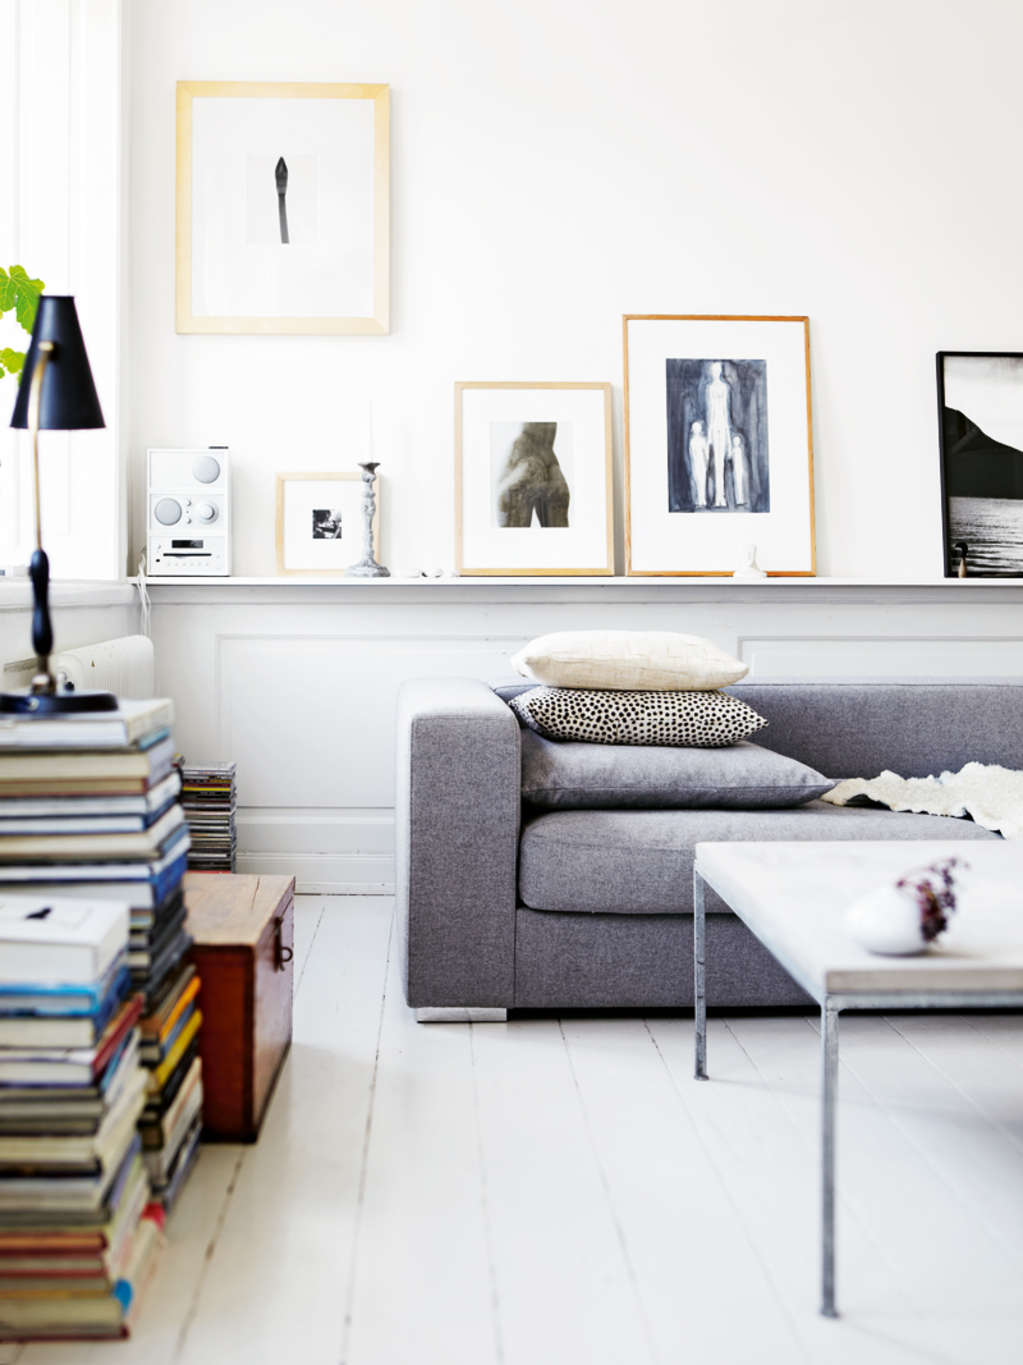 10 Ingenious Ways to Fit More Books Into Your Tiny Space